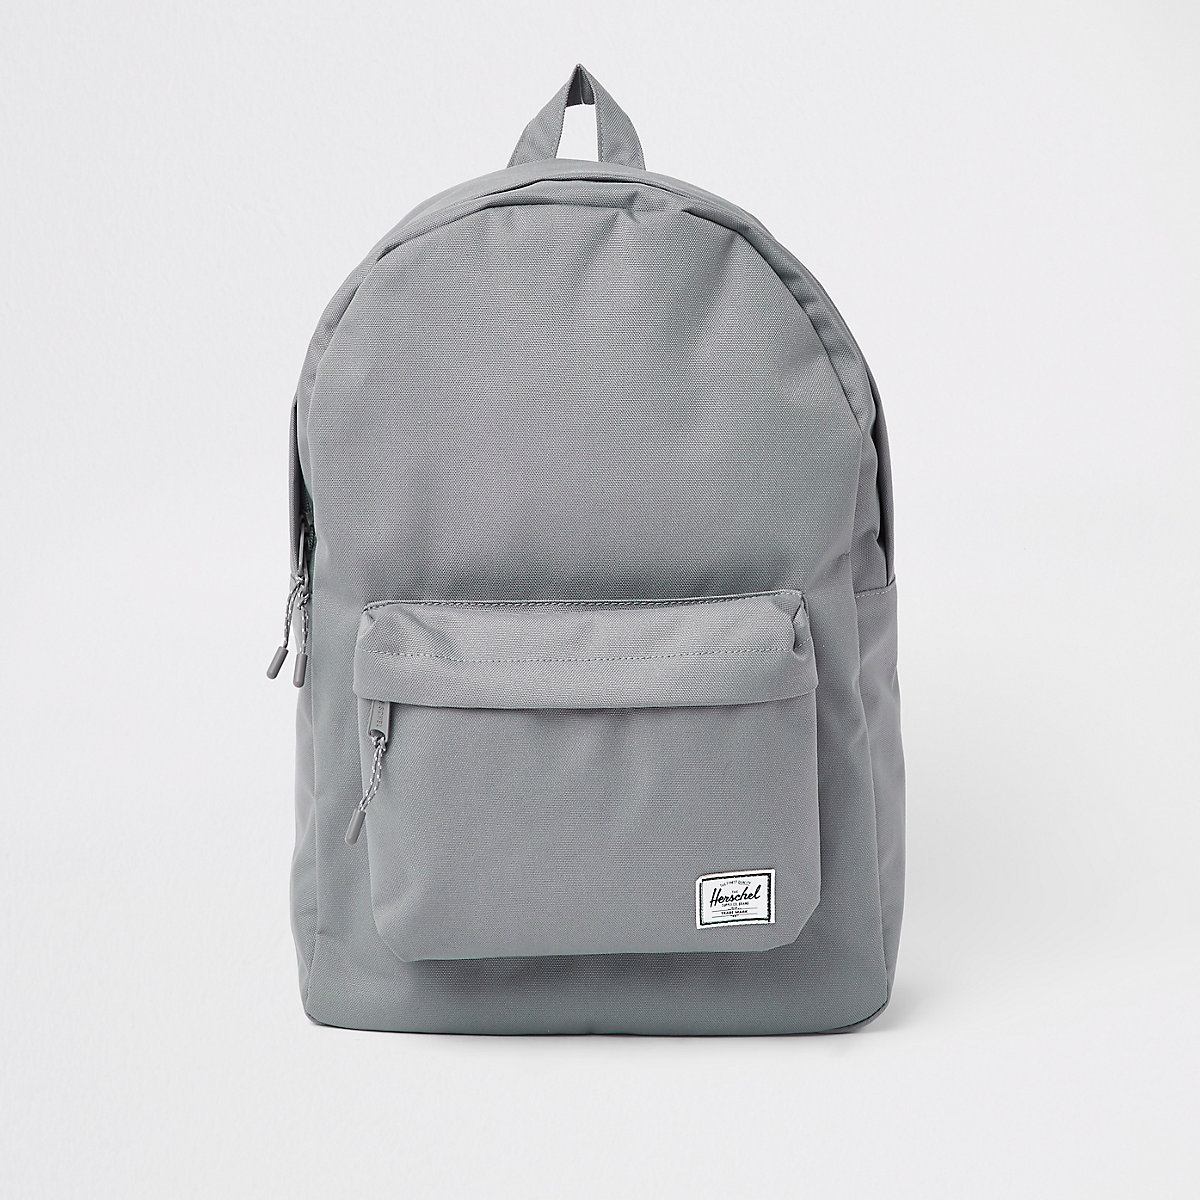 e1a0375a5248 Herschel grey classic backpack - Backpacks   Rucksacks - Bags - men